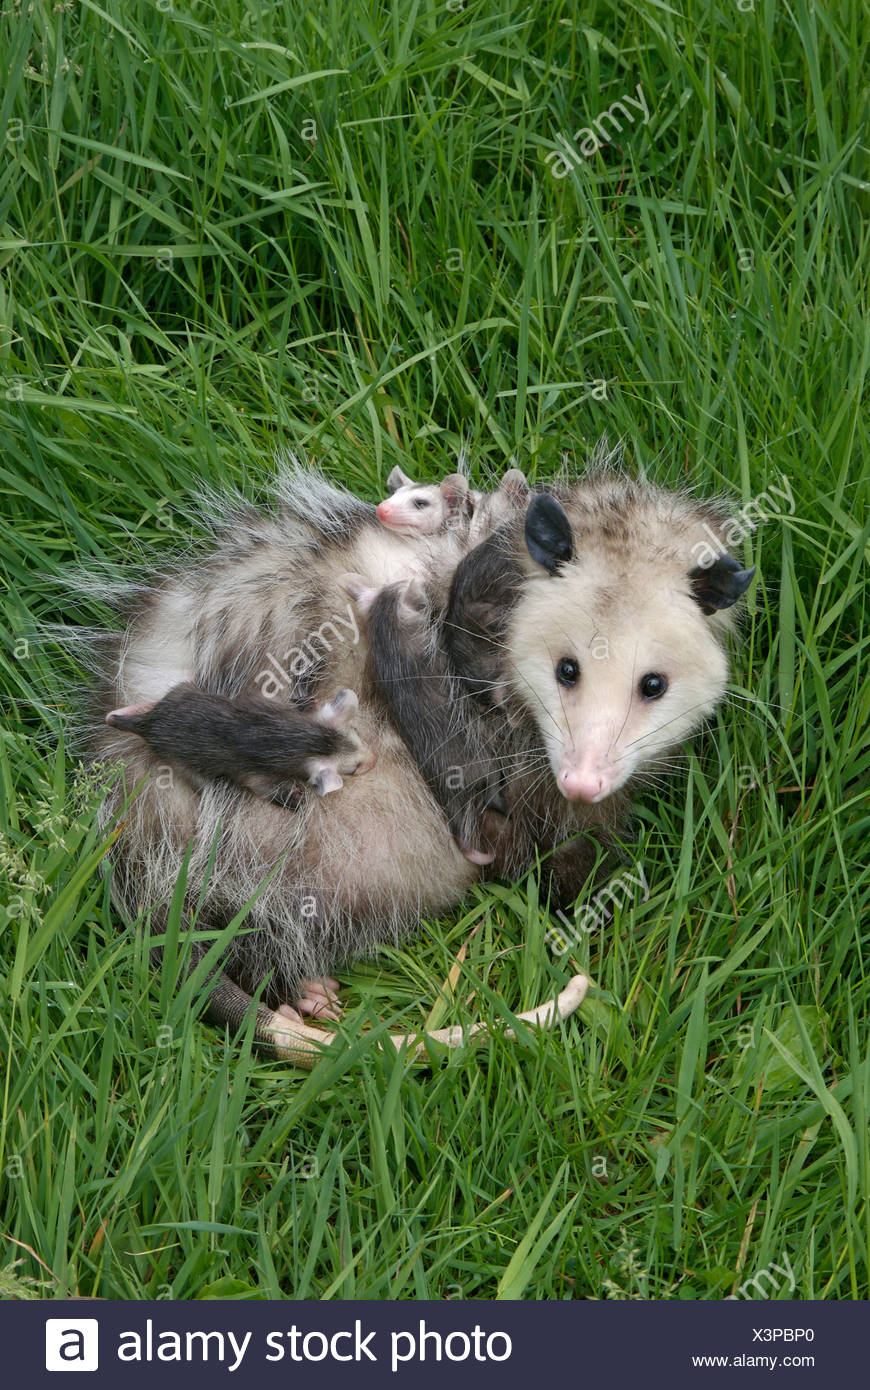 Female Opossum (Didelphis virginiana), with babies clinging to her in spring. Minnesota, USA - Stock Image